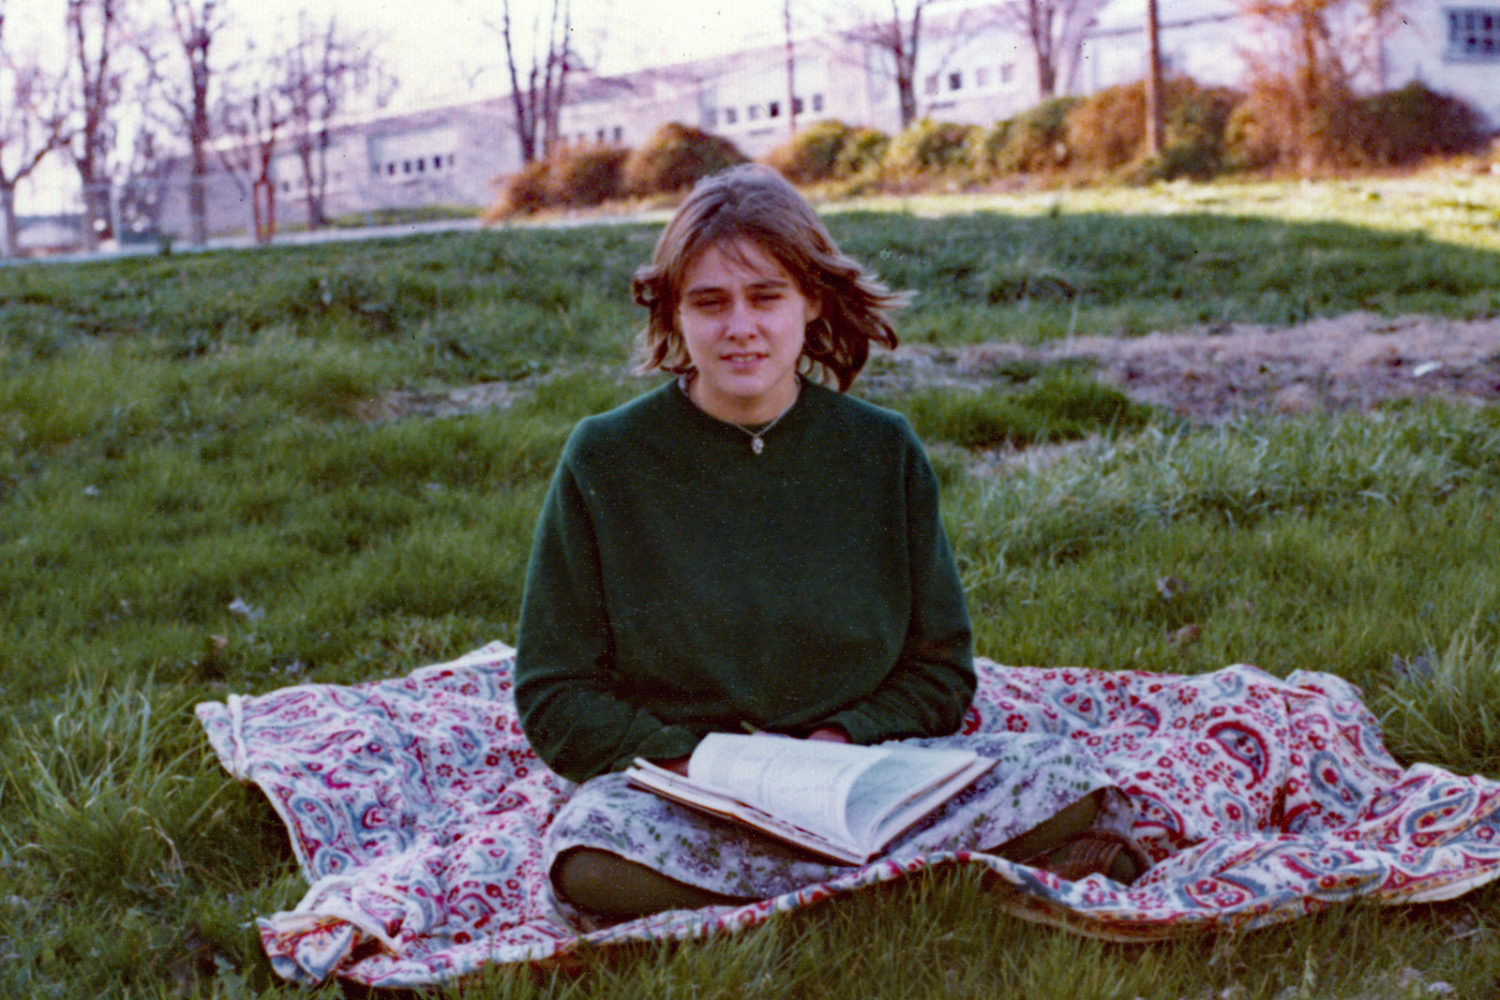 Peggi reading blanket next to Milton house.